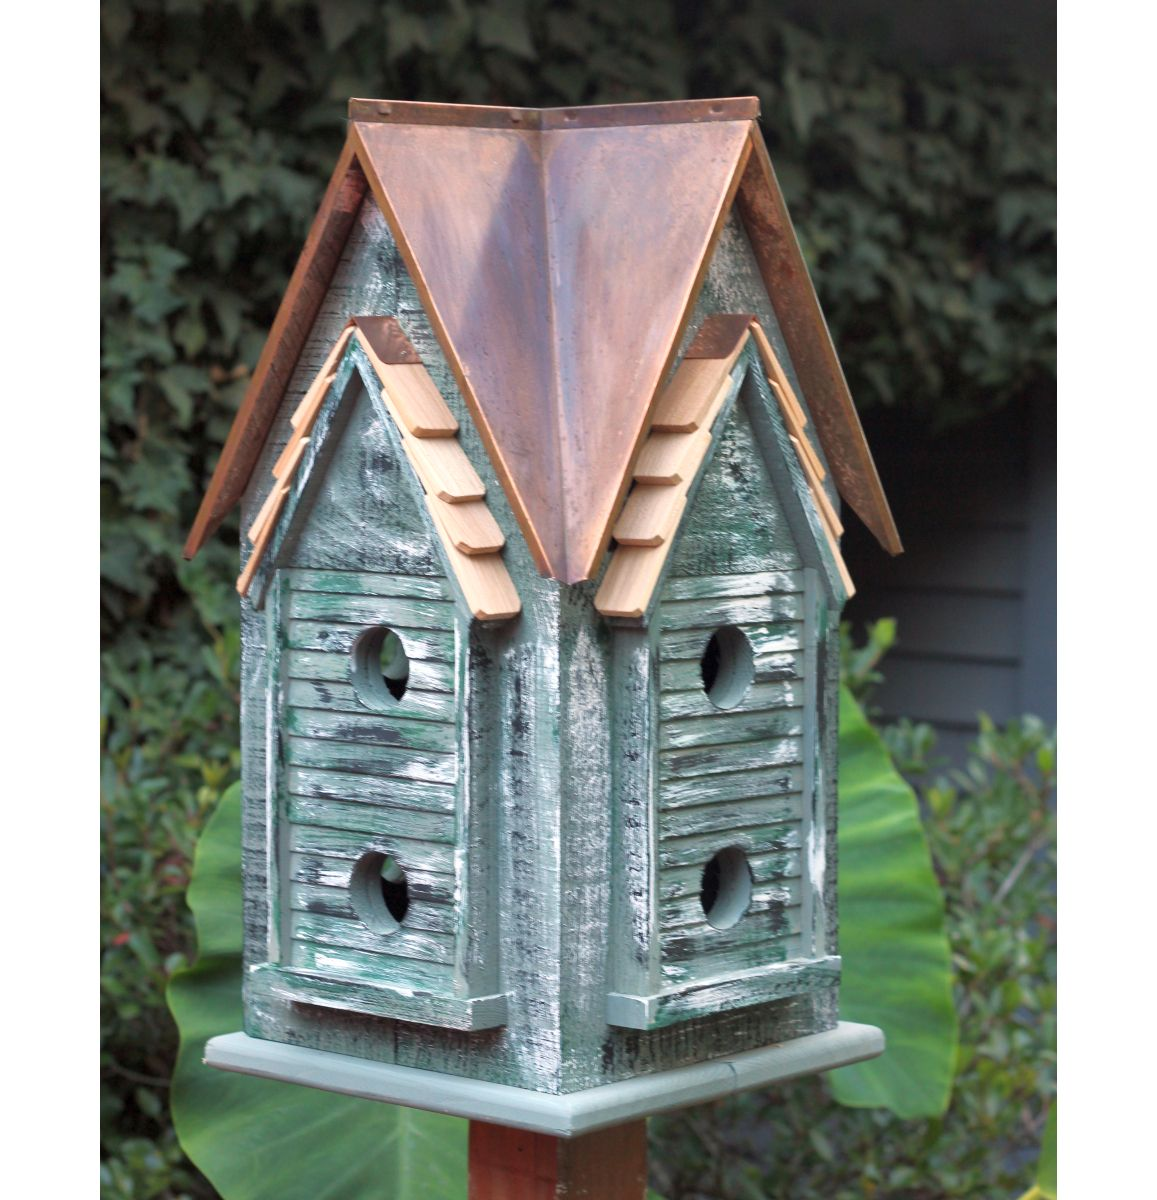 Copper Mansion Bird House Brown Patina Roof Decorative And Functional Birdhouses For Nesting Birds At Songbird Gard Bird House Bird Houses Purple Martin House